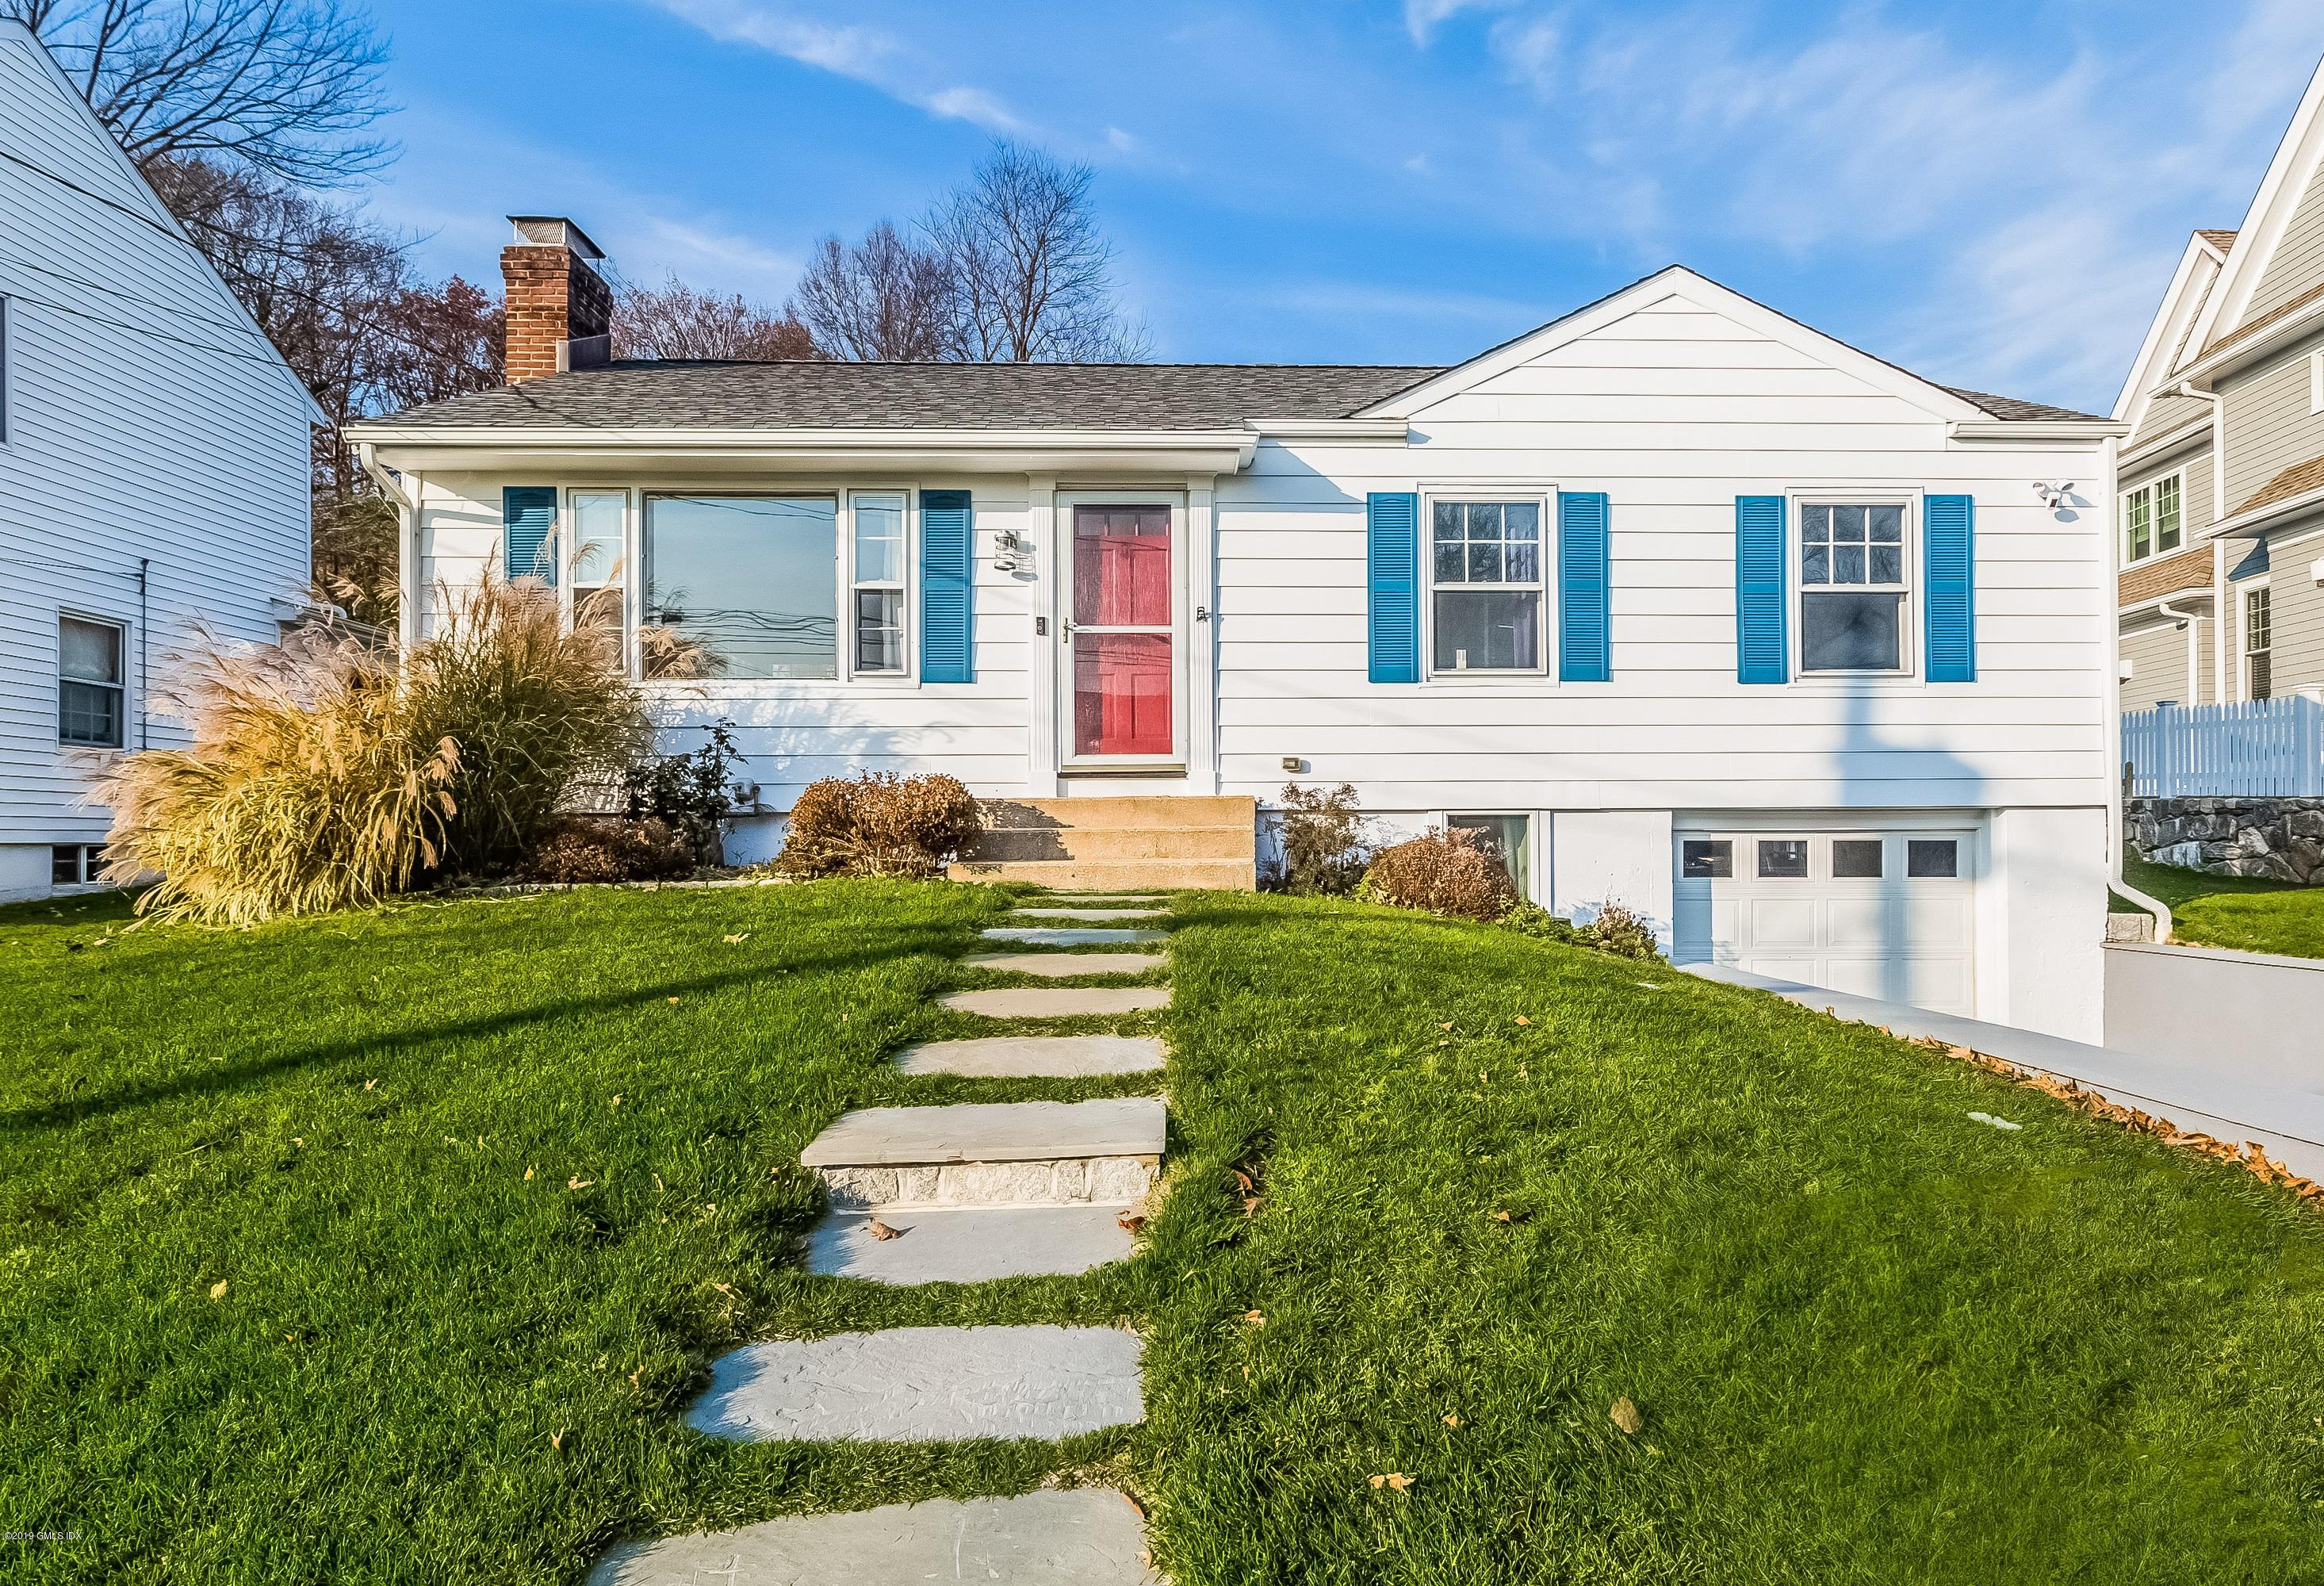 76 Halsey Drive,Old Greenwich,Connecticut 06870,3 Bedrooms Bedrooms,2 BathroomsBathrooms,Single family,Halsey,105248